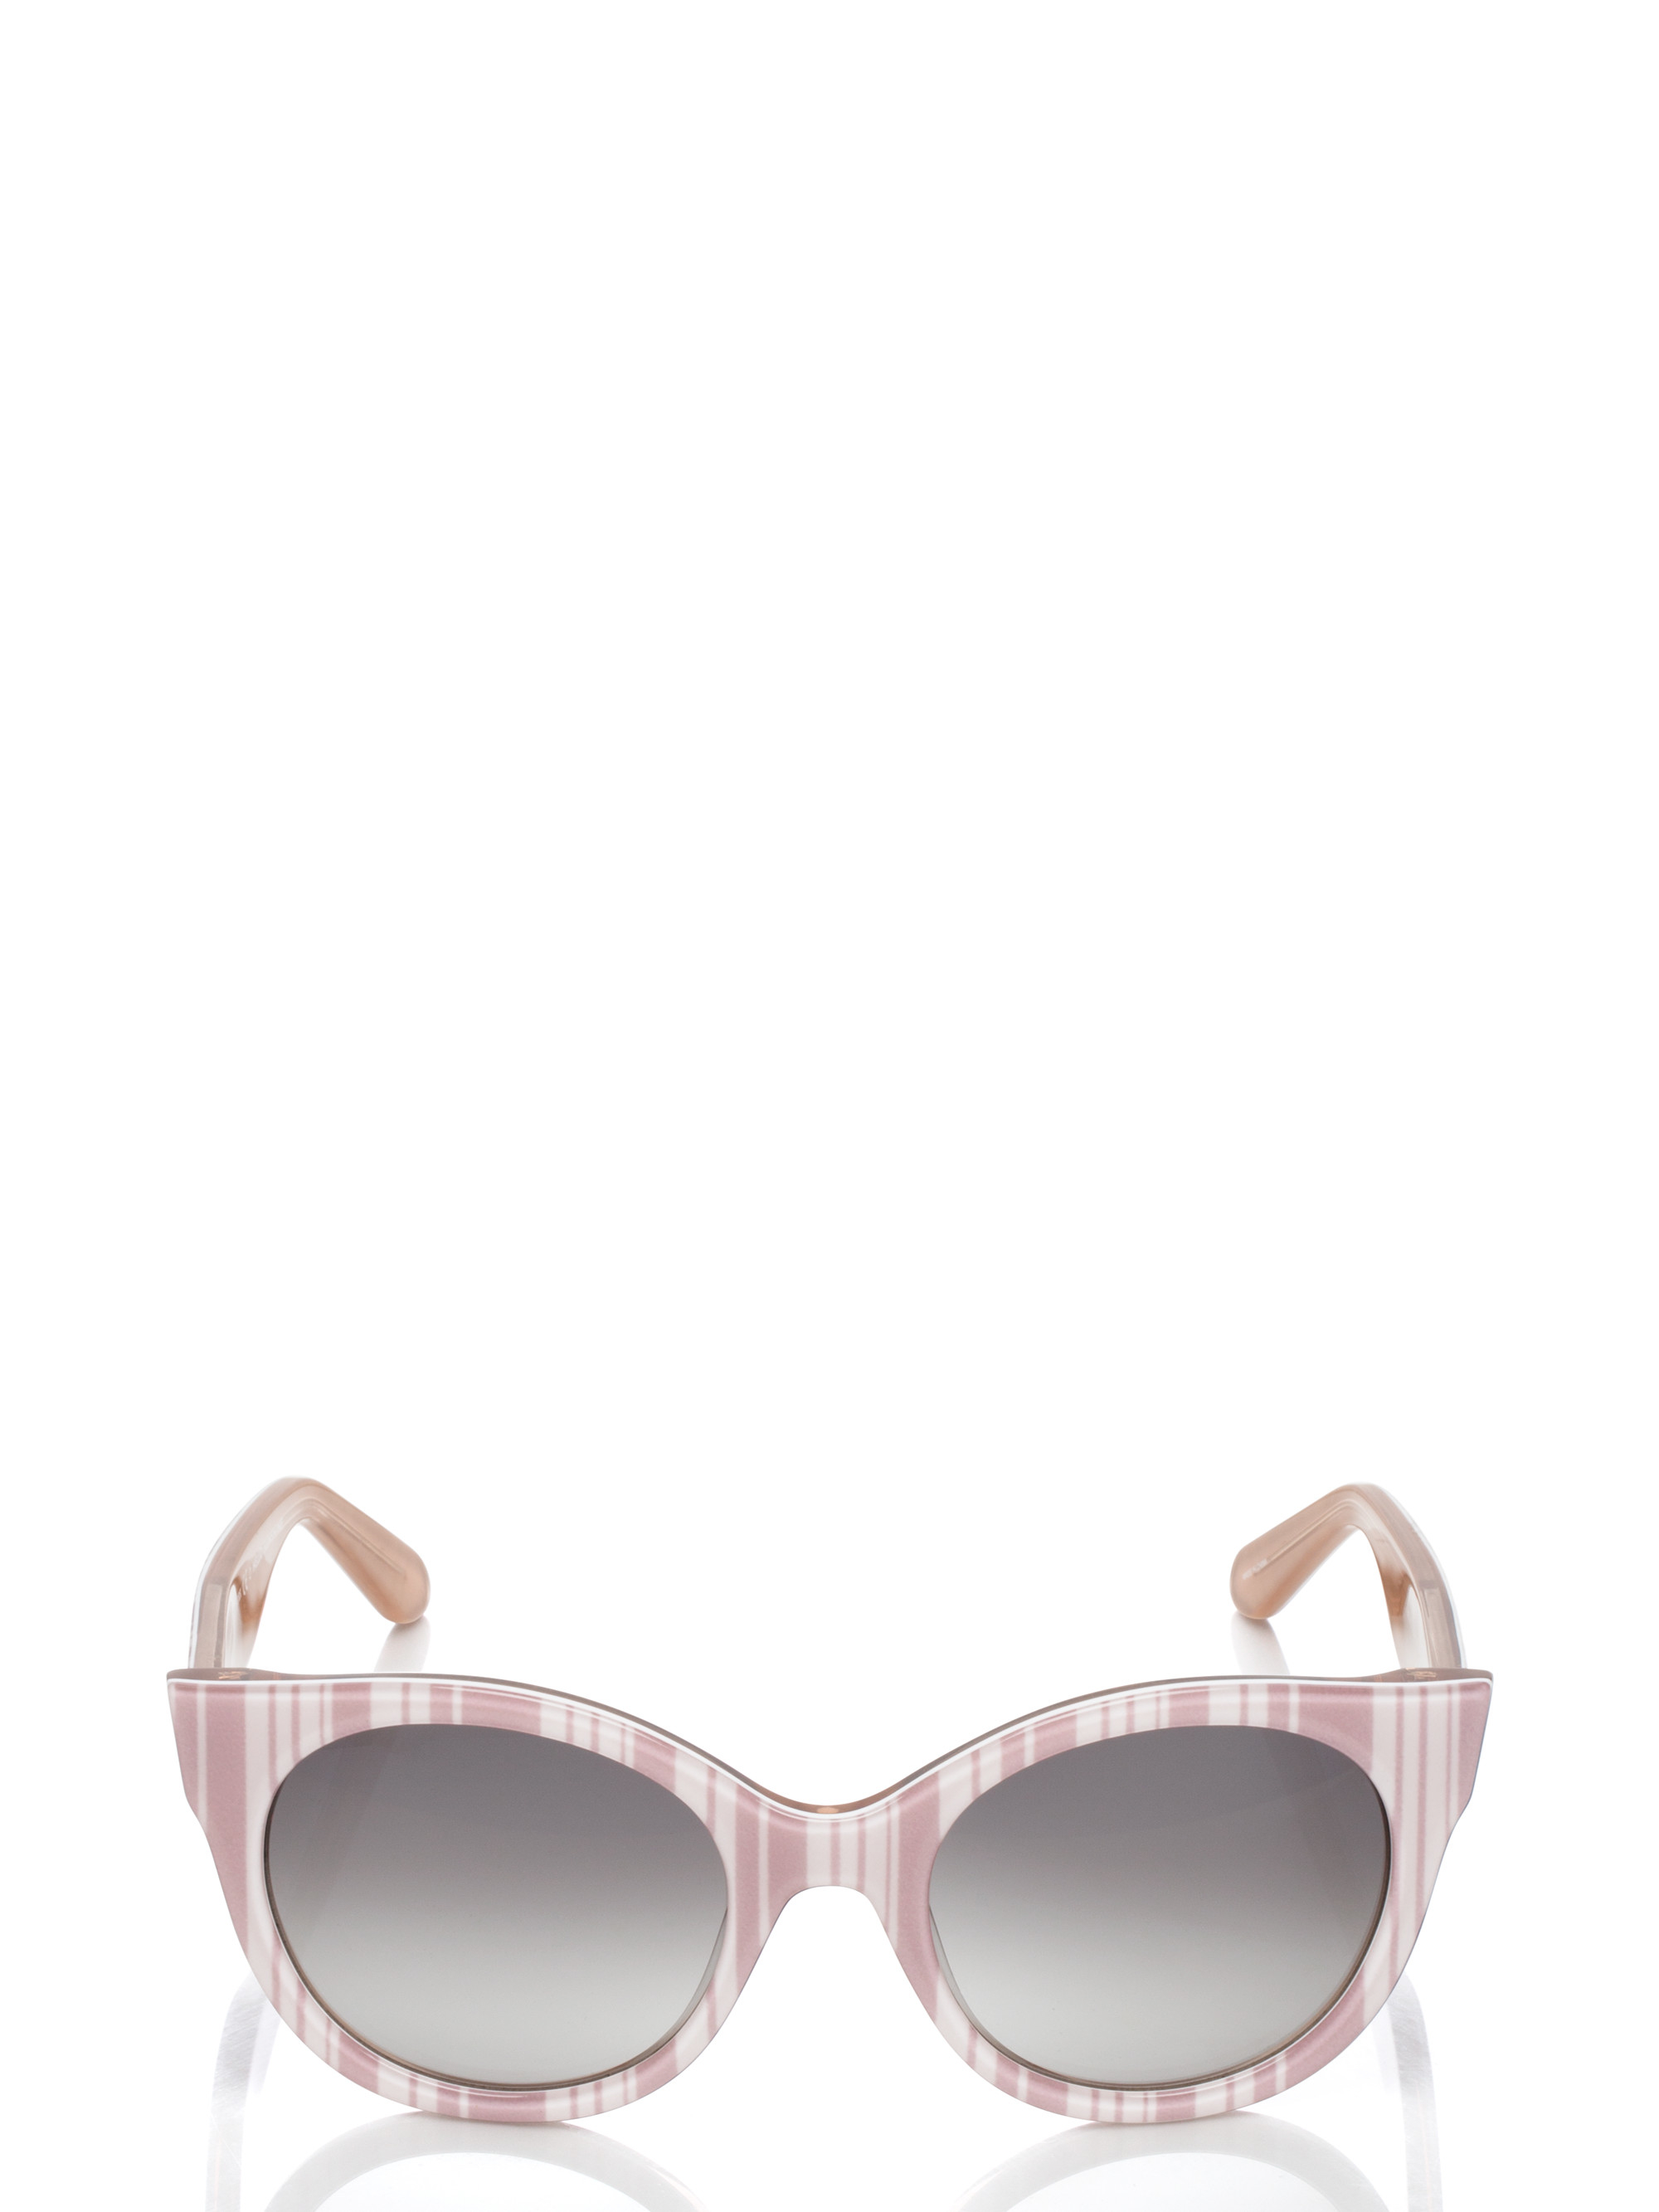 65f1c7ed6c7c Kate Spade Melly Sunglasses in Natural - Lyst